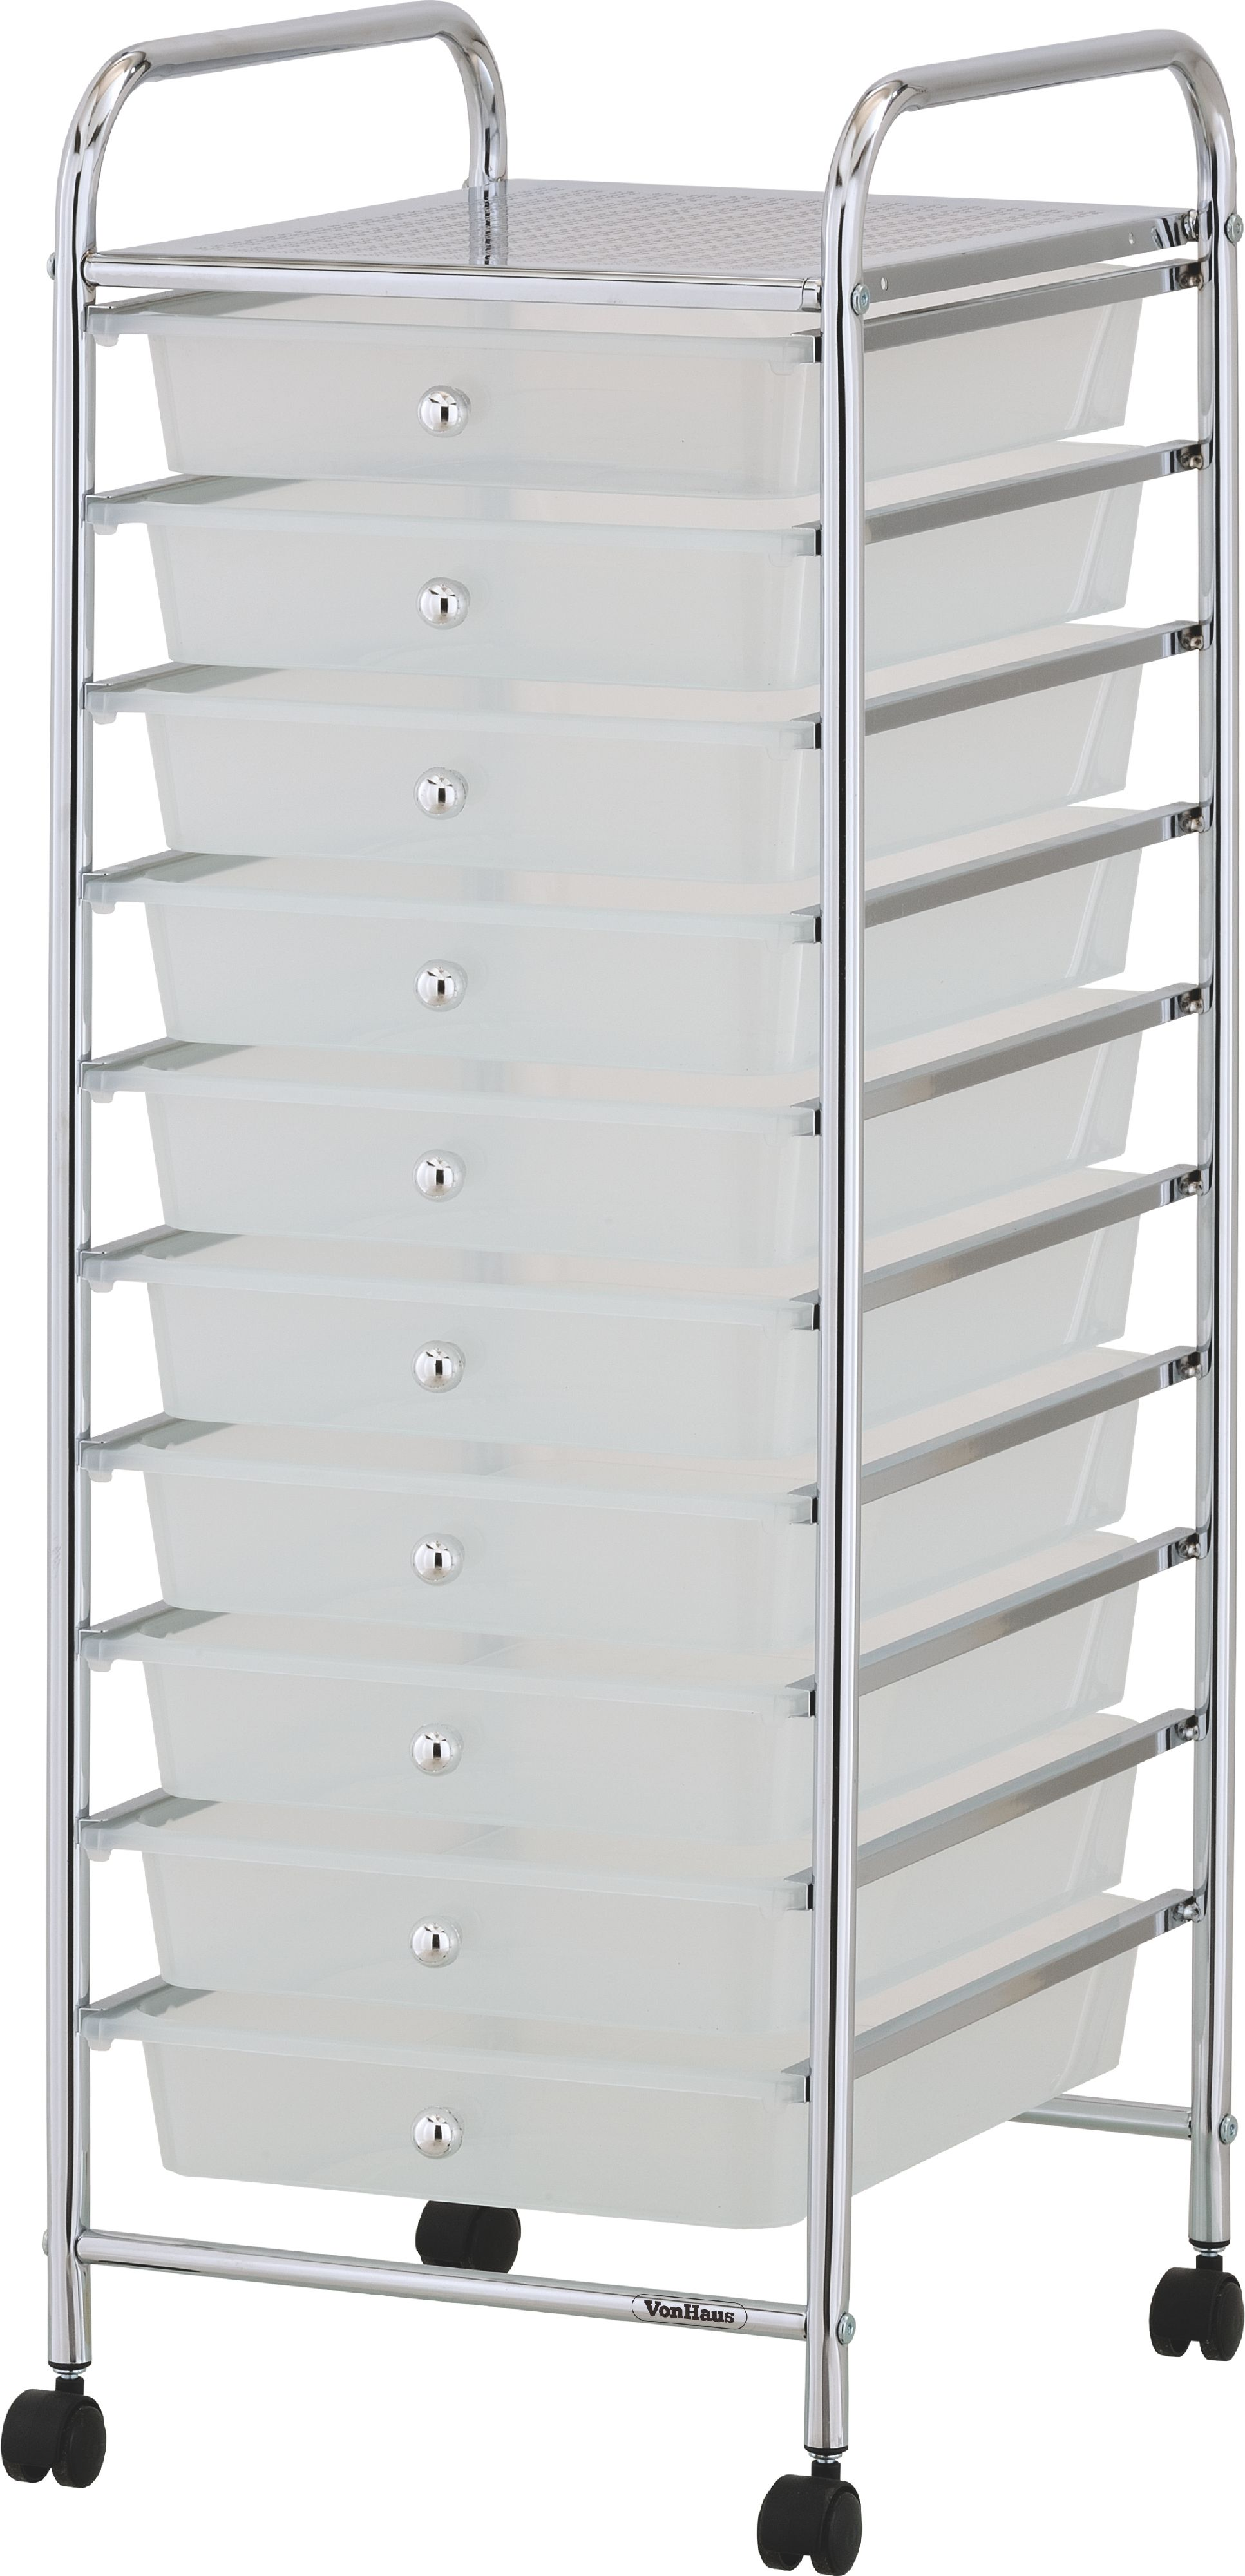 Sentinel VonHaus 10 Drawer Mobile Storage Trolley For Home Office Or Beauty  Salon White